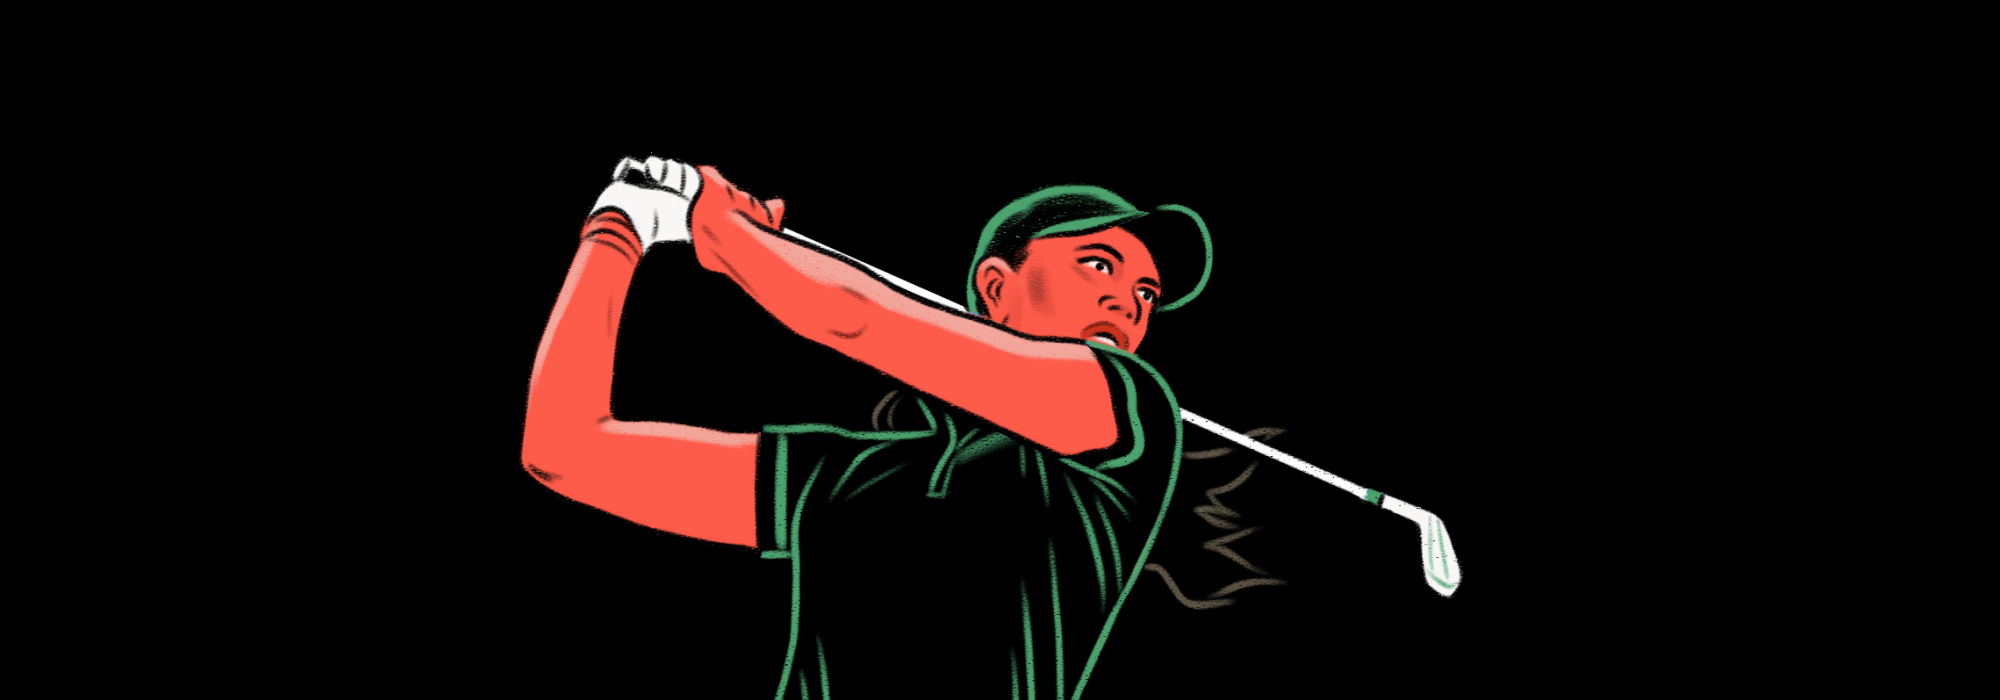 A Waste Management Phoenix Open live event